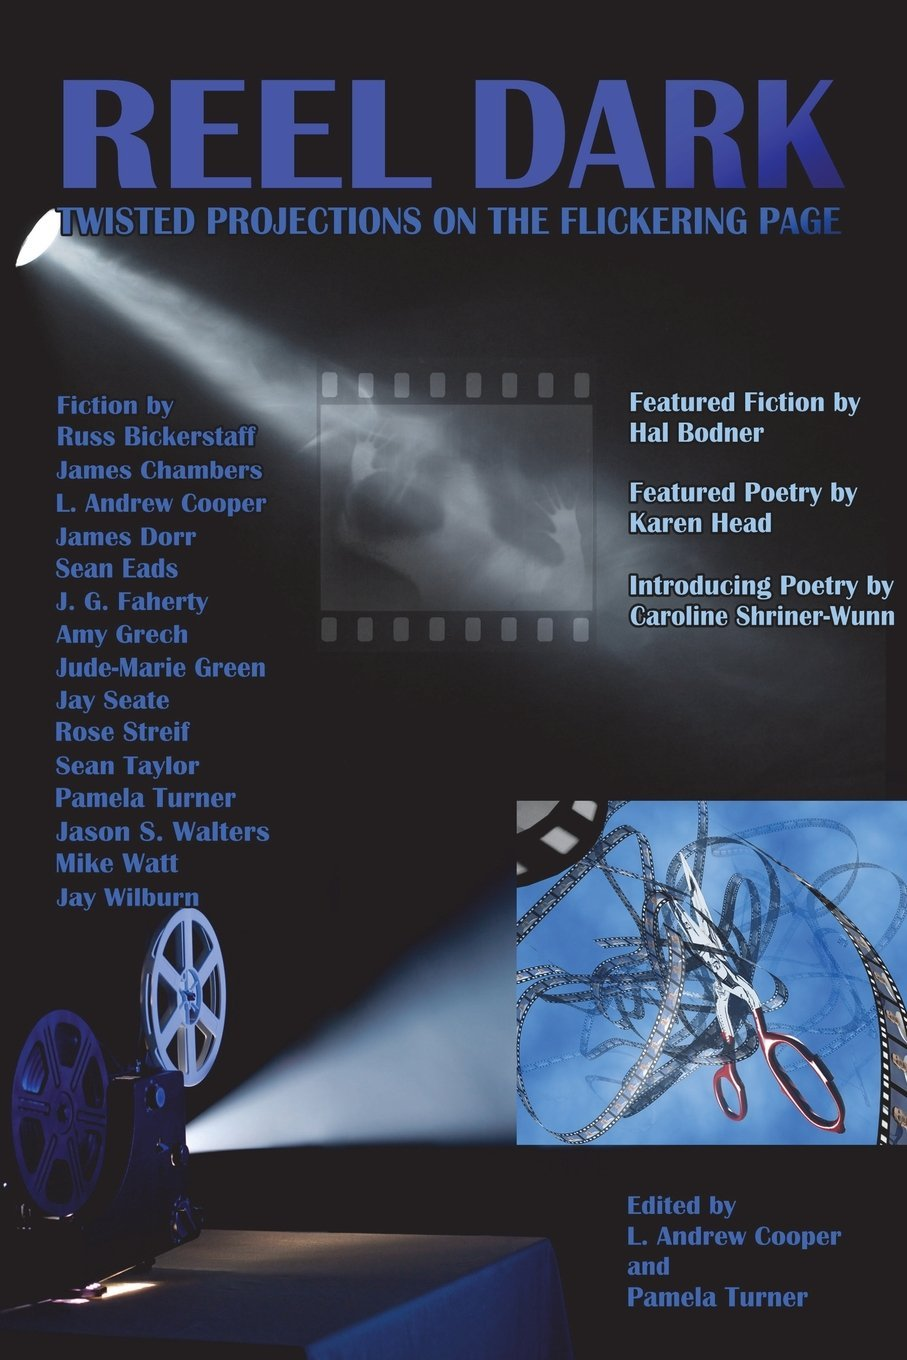 Reel Dark: Twisted Projections on the Flickering Page L. Andrew Cooper